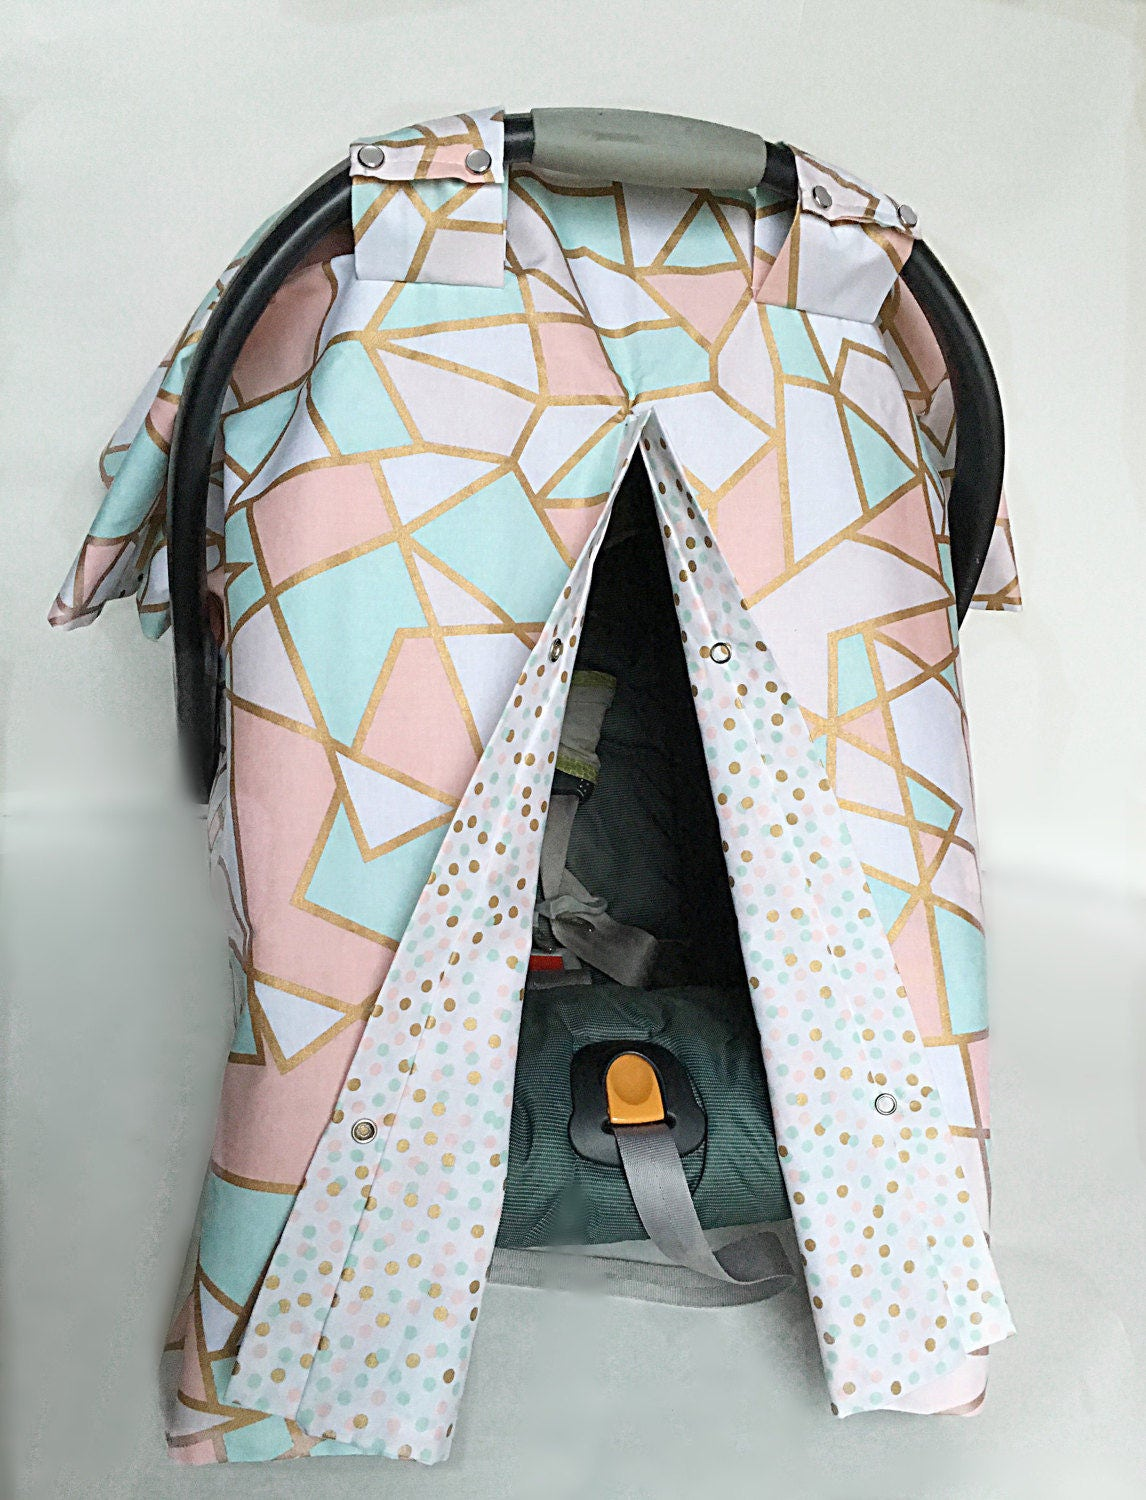 Baby Car Seat Covers Car Seat Covers For Girls Infant Car